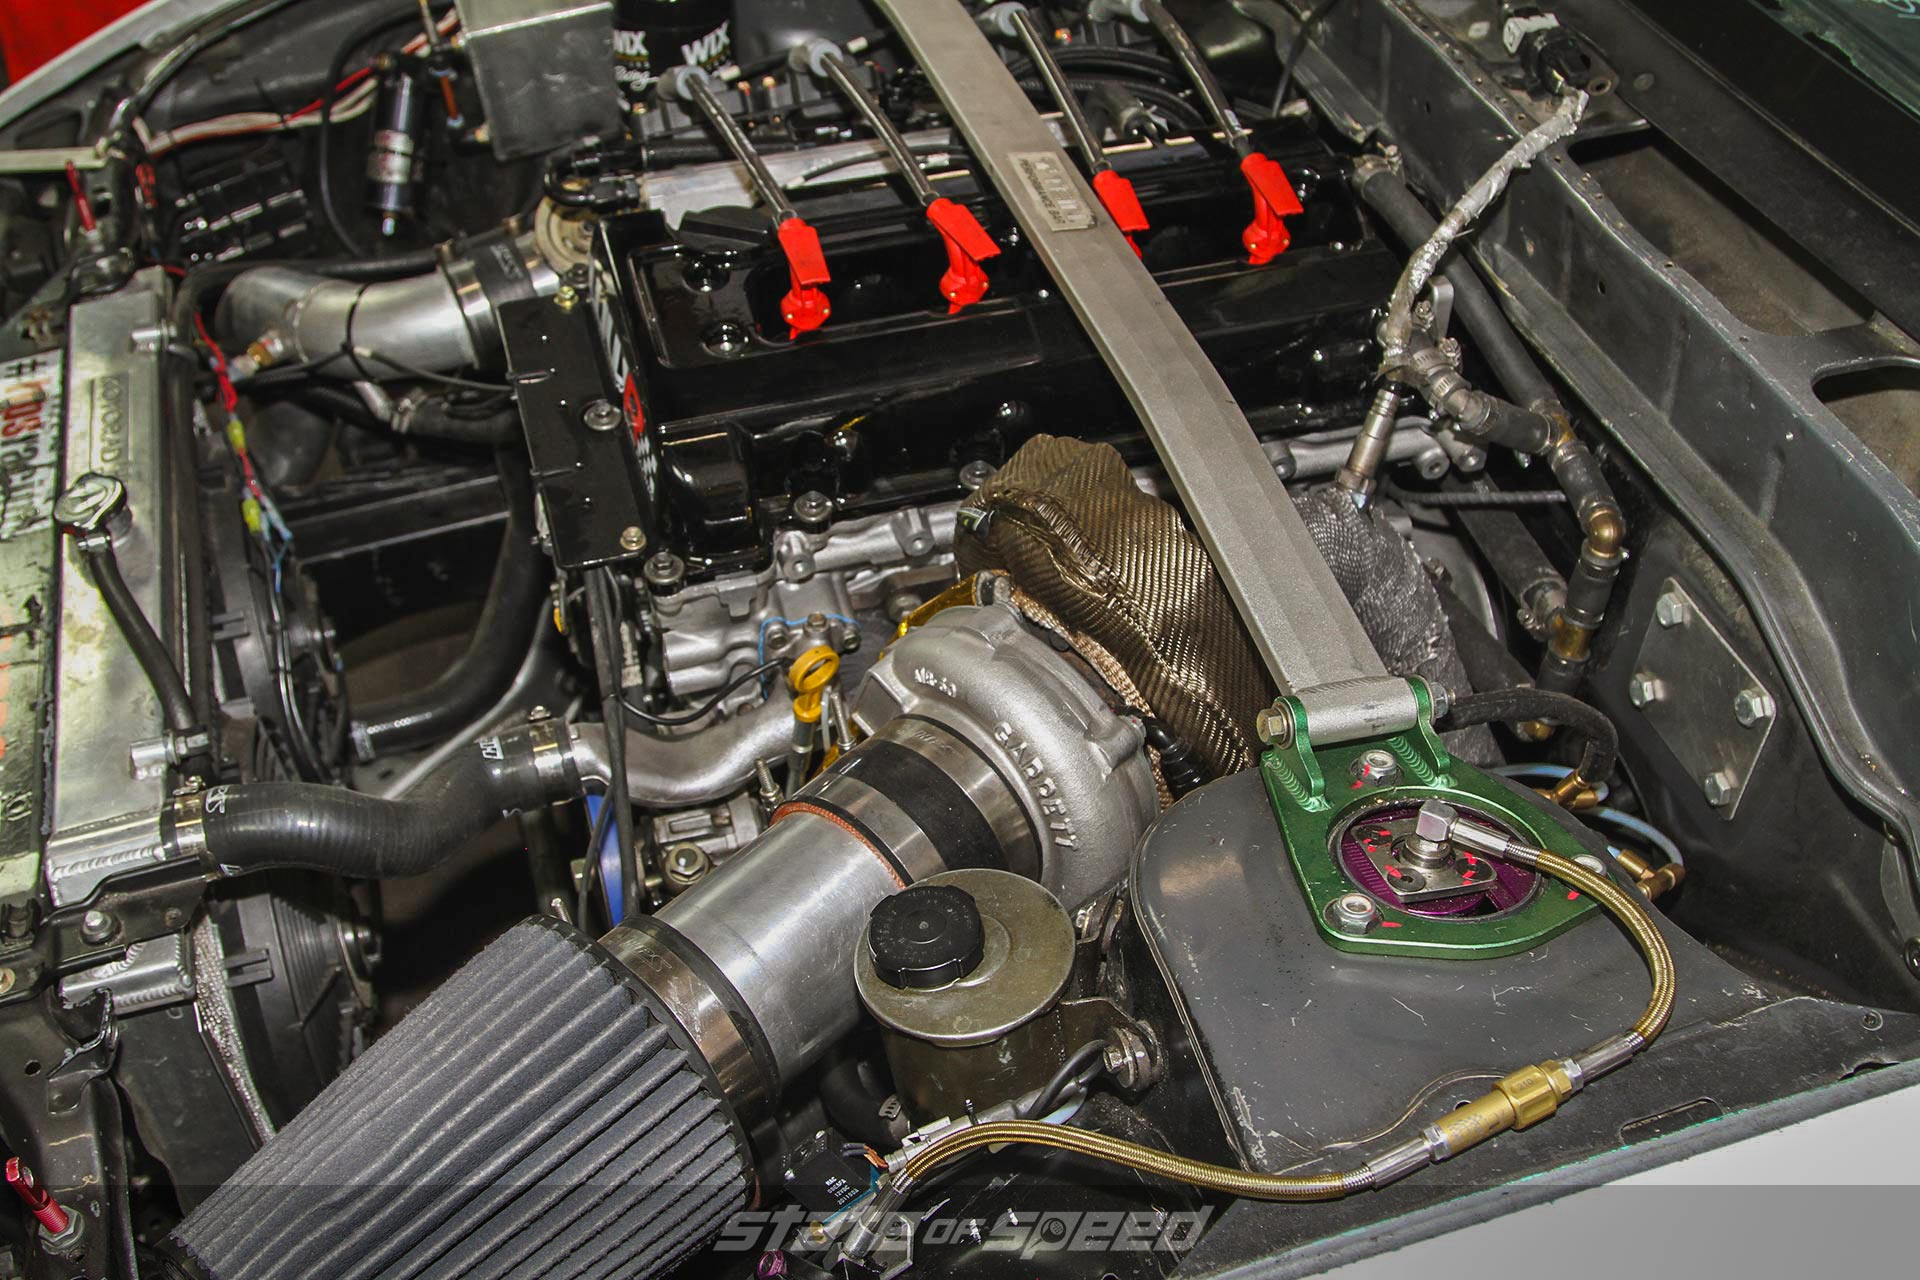 Intake and wastegate in a turbocharged setup